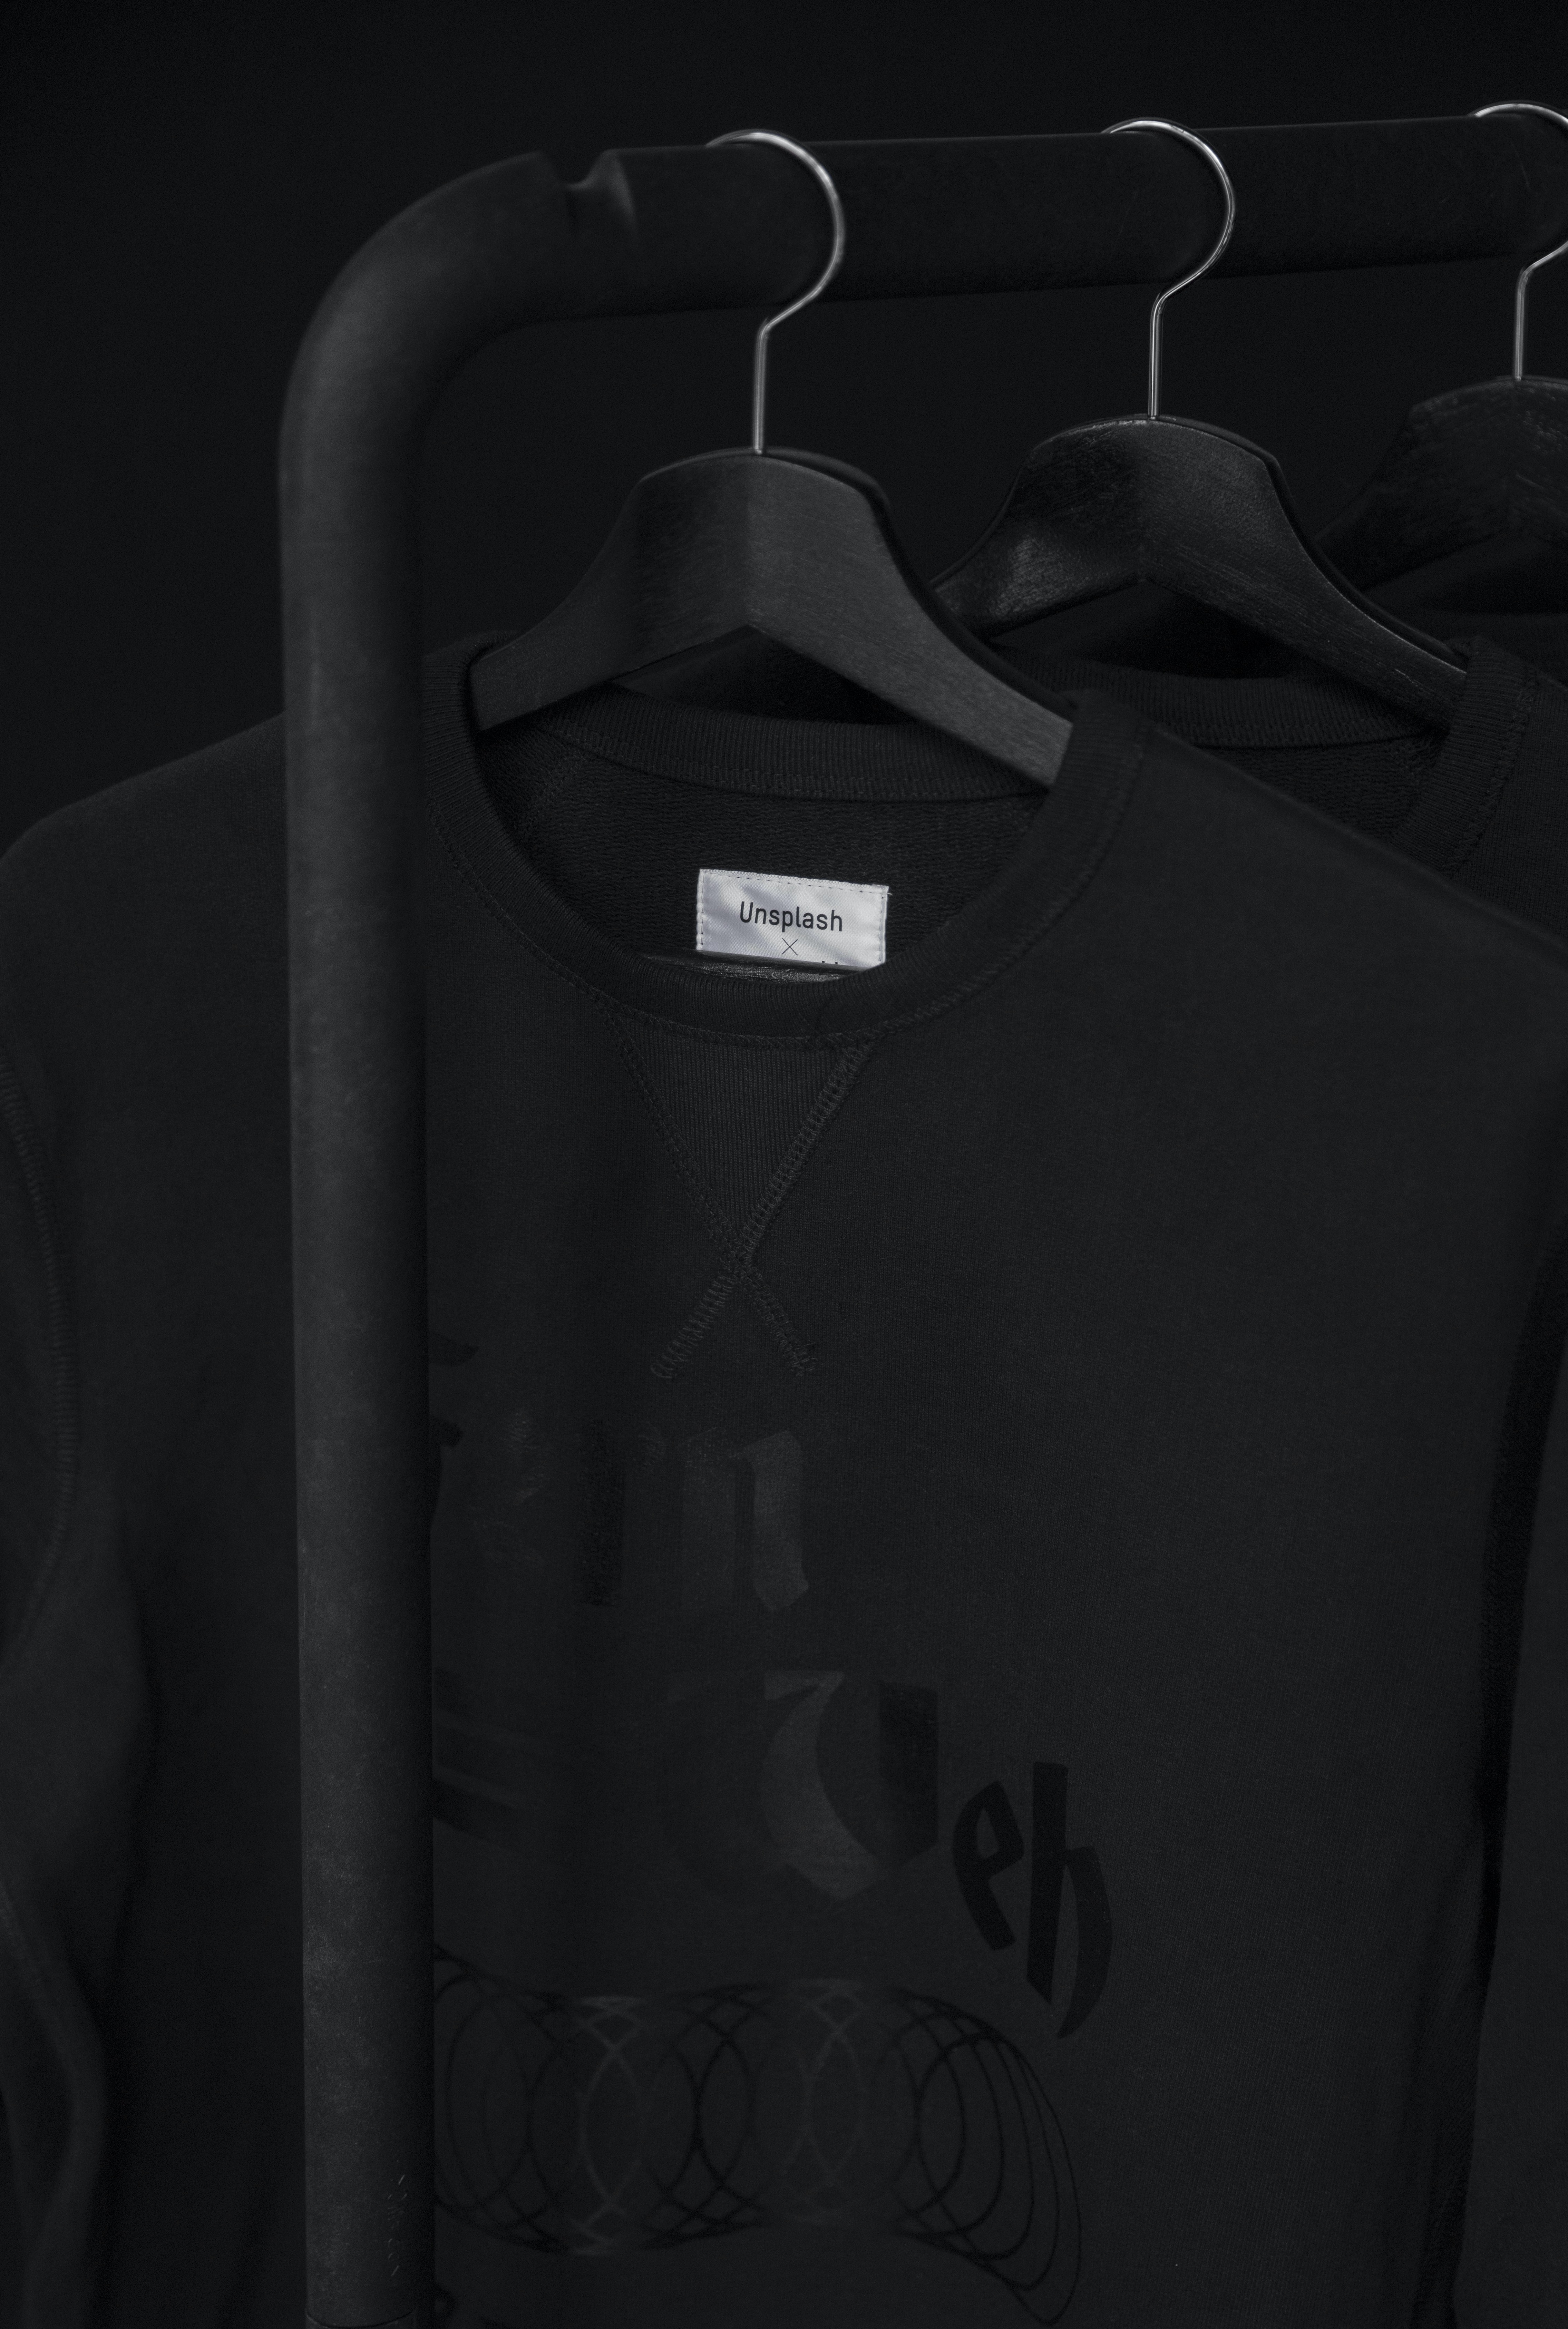 black crew-neck t-shirt on clothes hanger